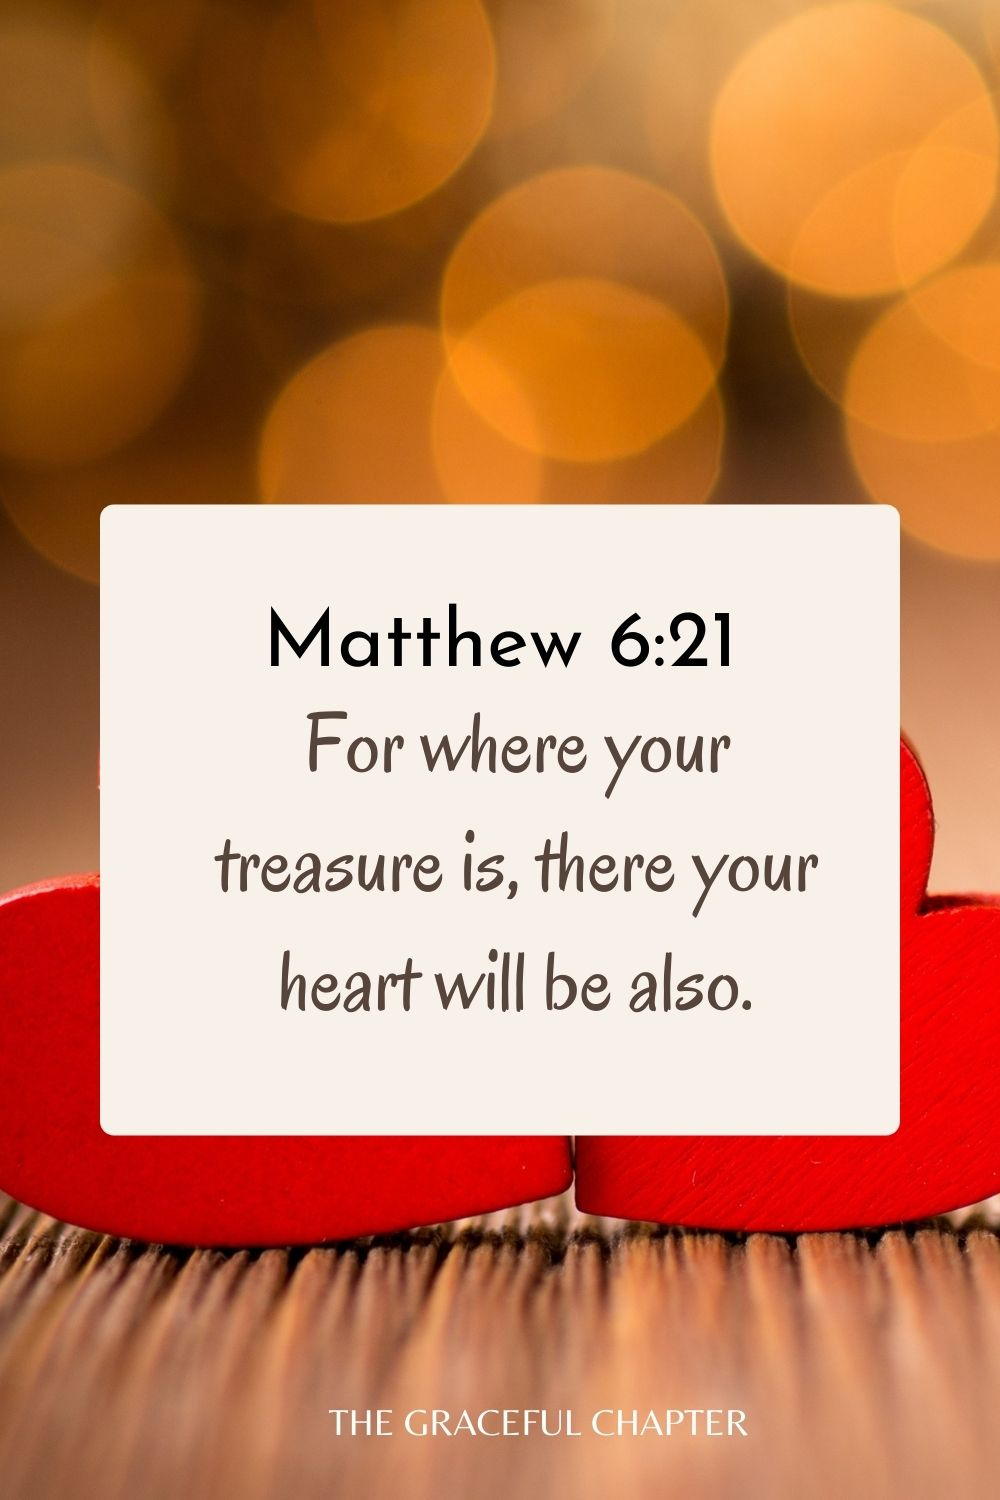 For where your treasure is, there your heart will be also. Matthew 6:21